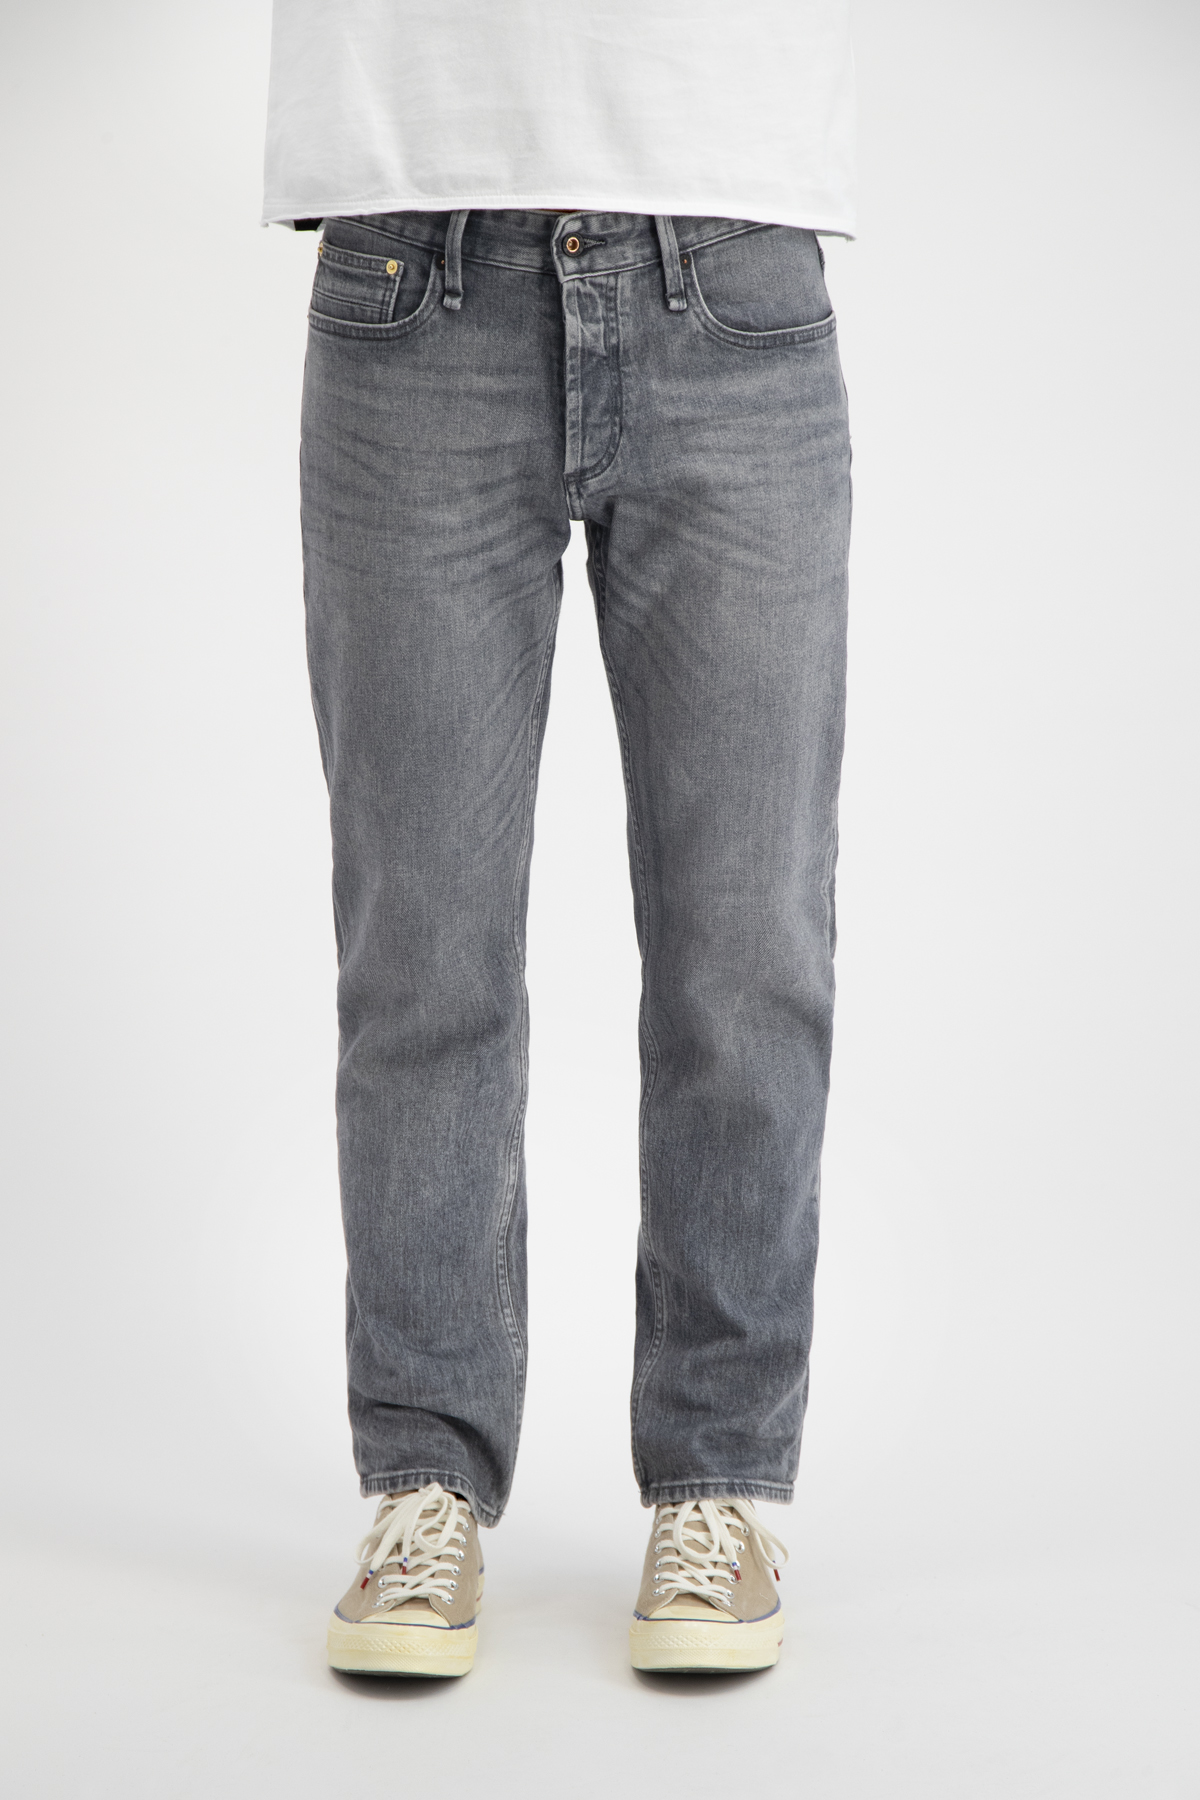 Blade Straight Fit Jeans - GRCG